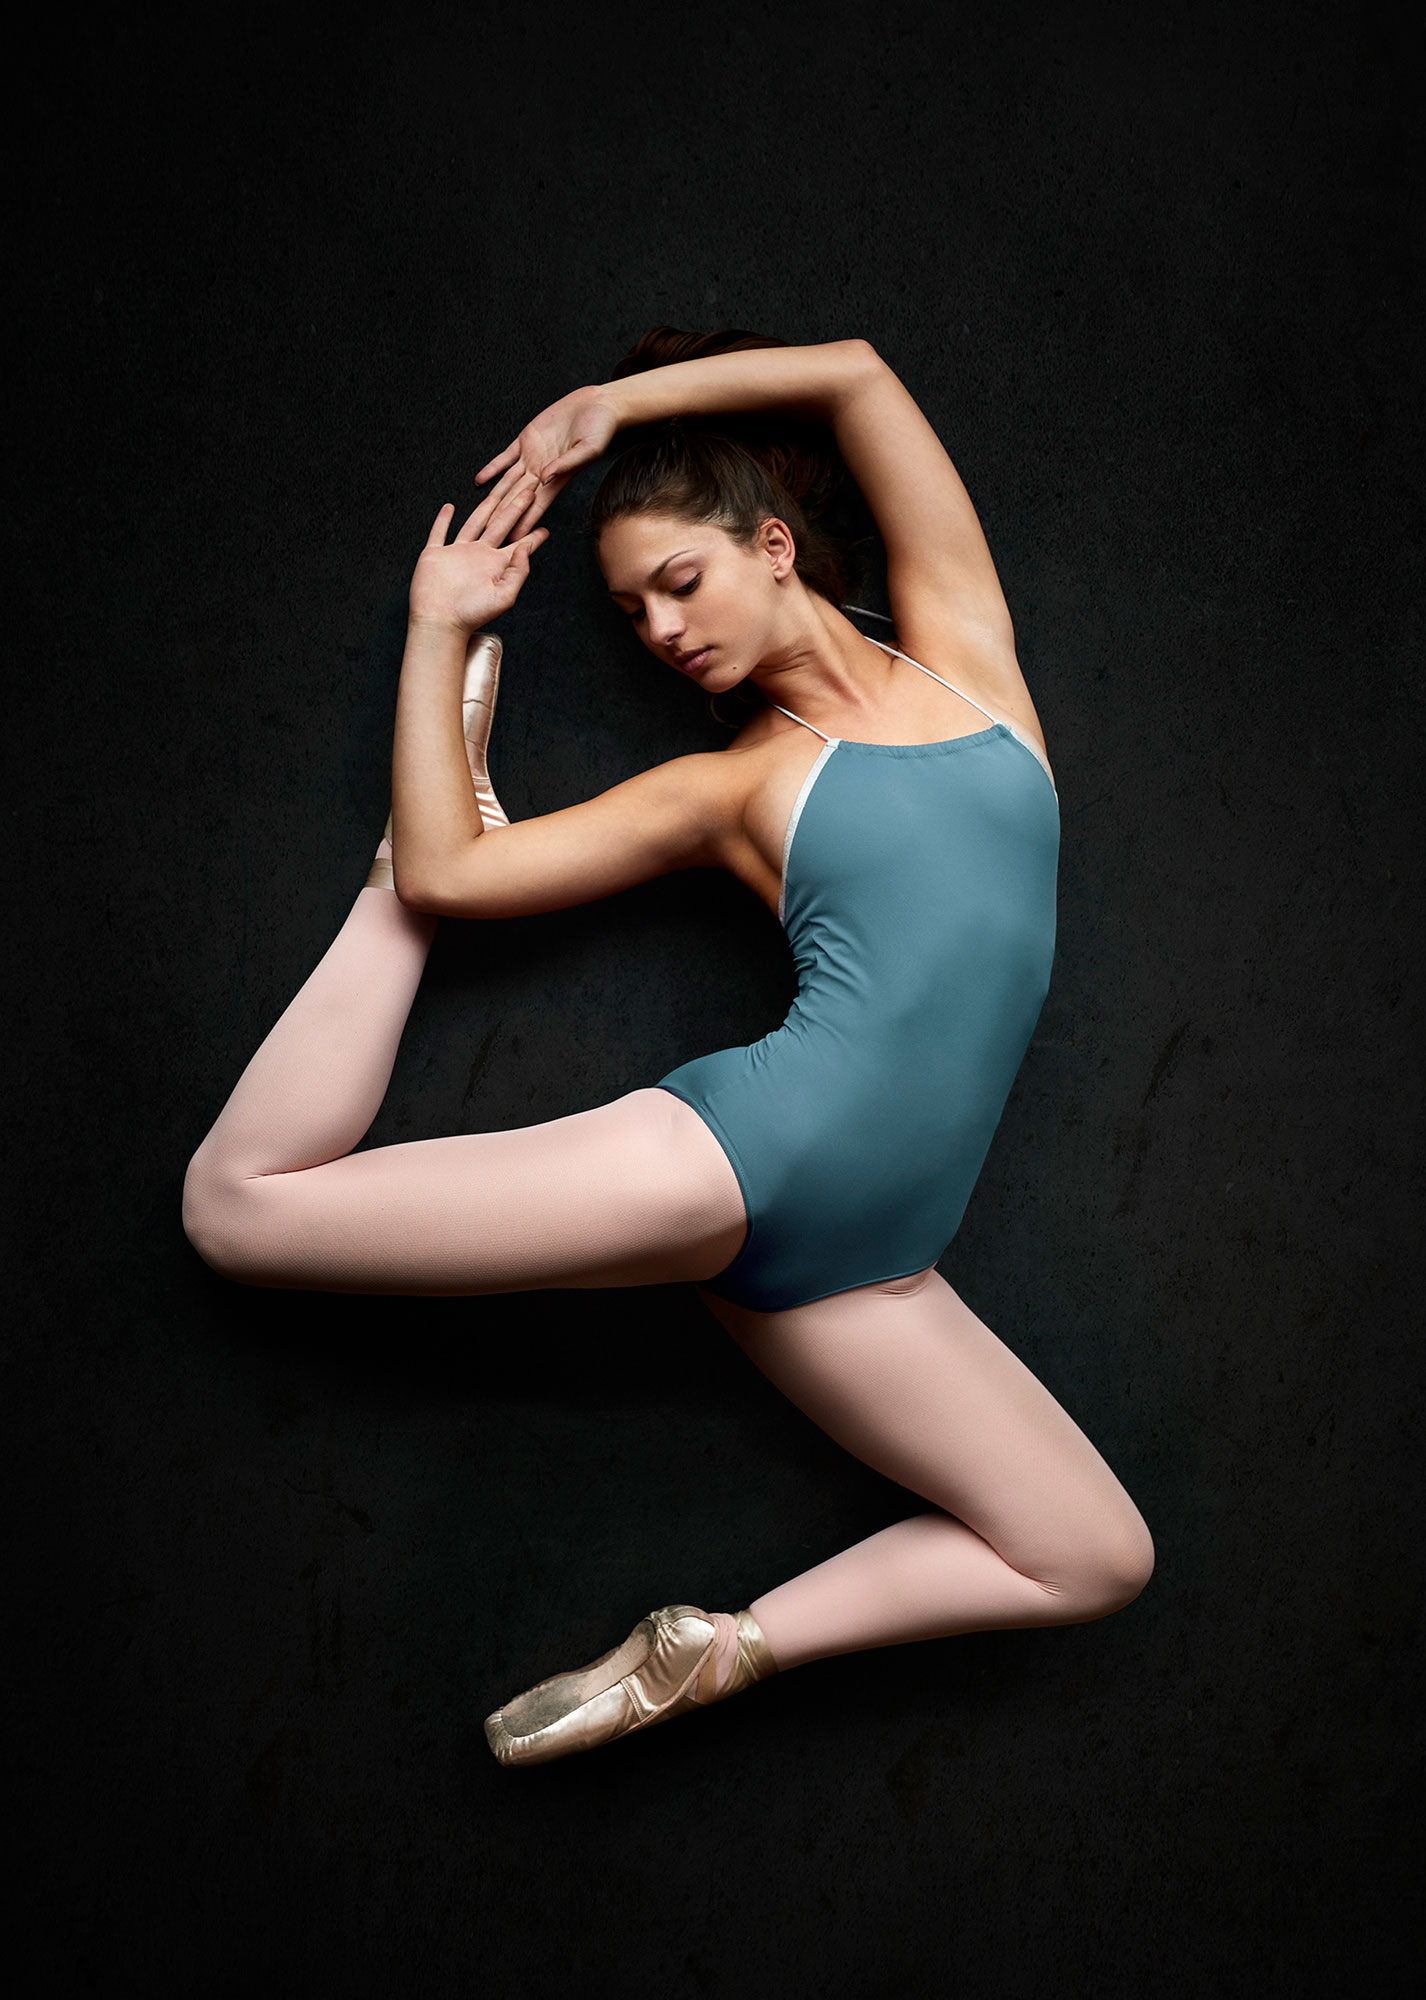 ABBOTT_CA_DanceStudio_Stretching_0023_RGB_2